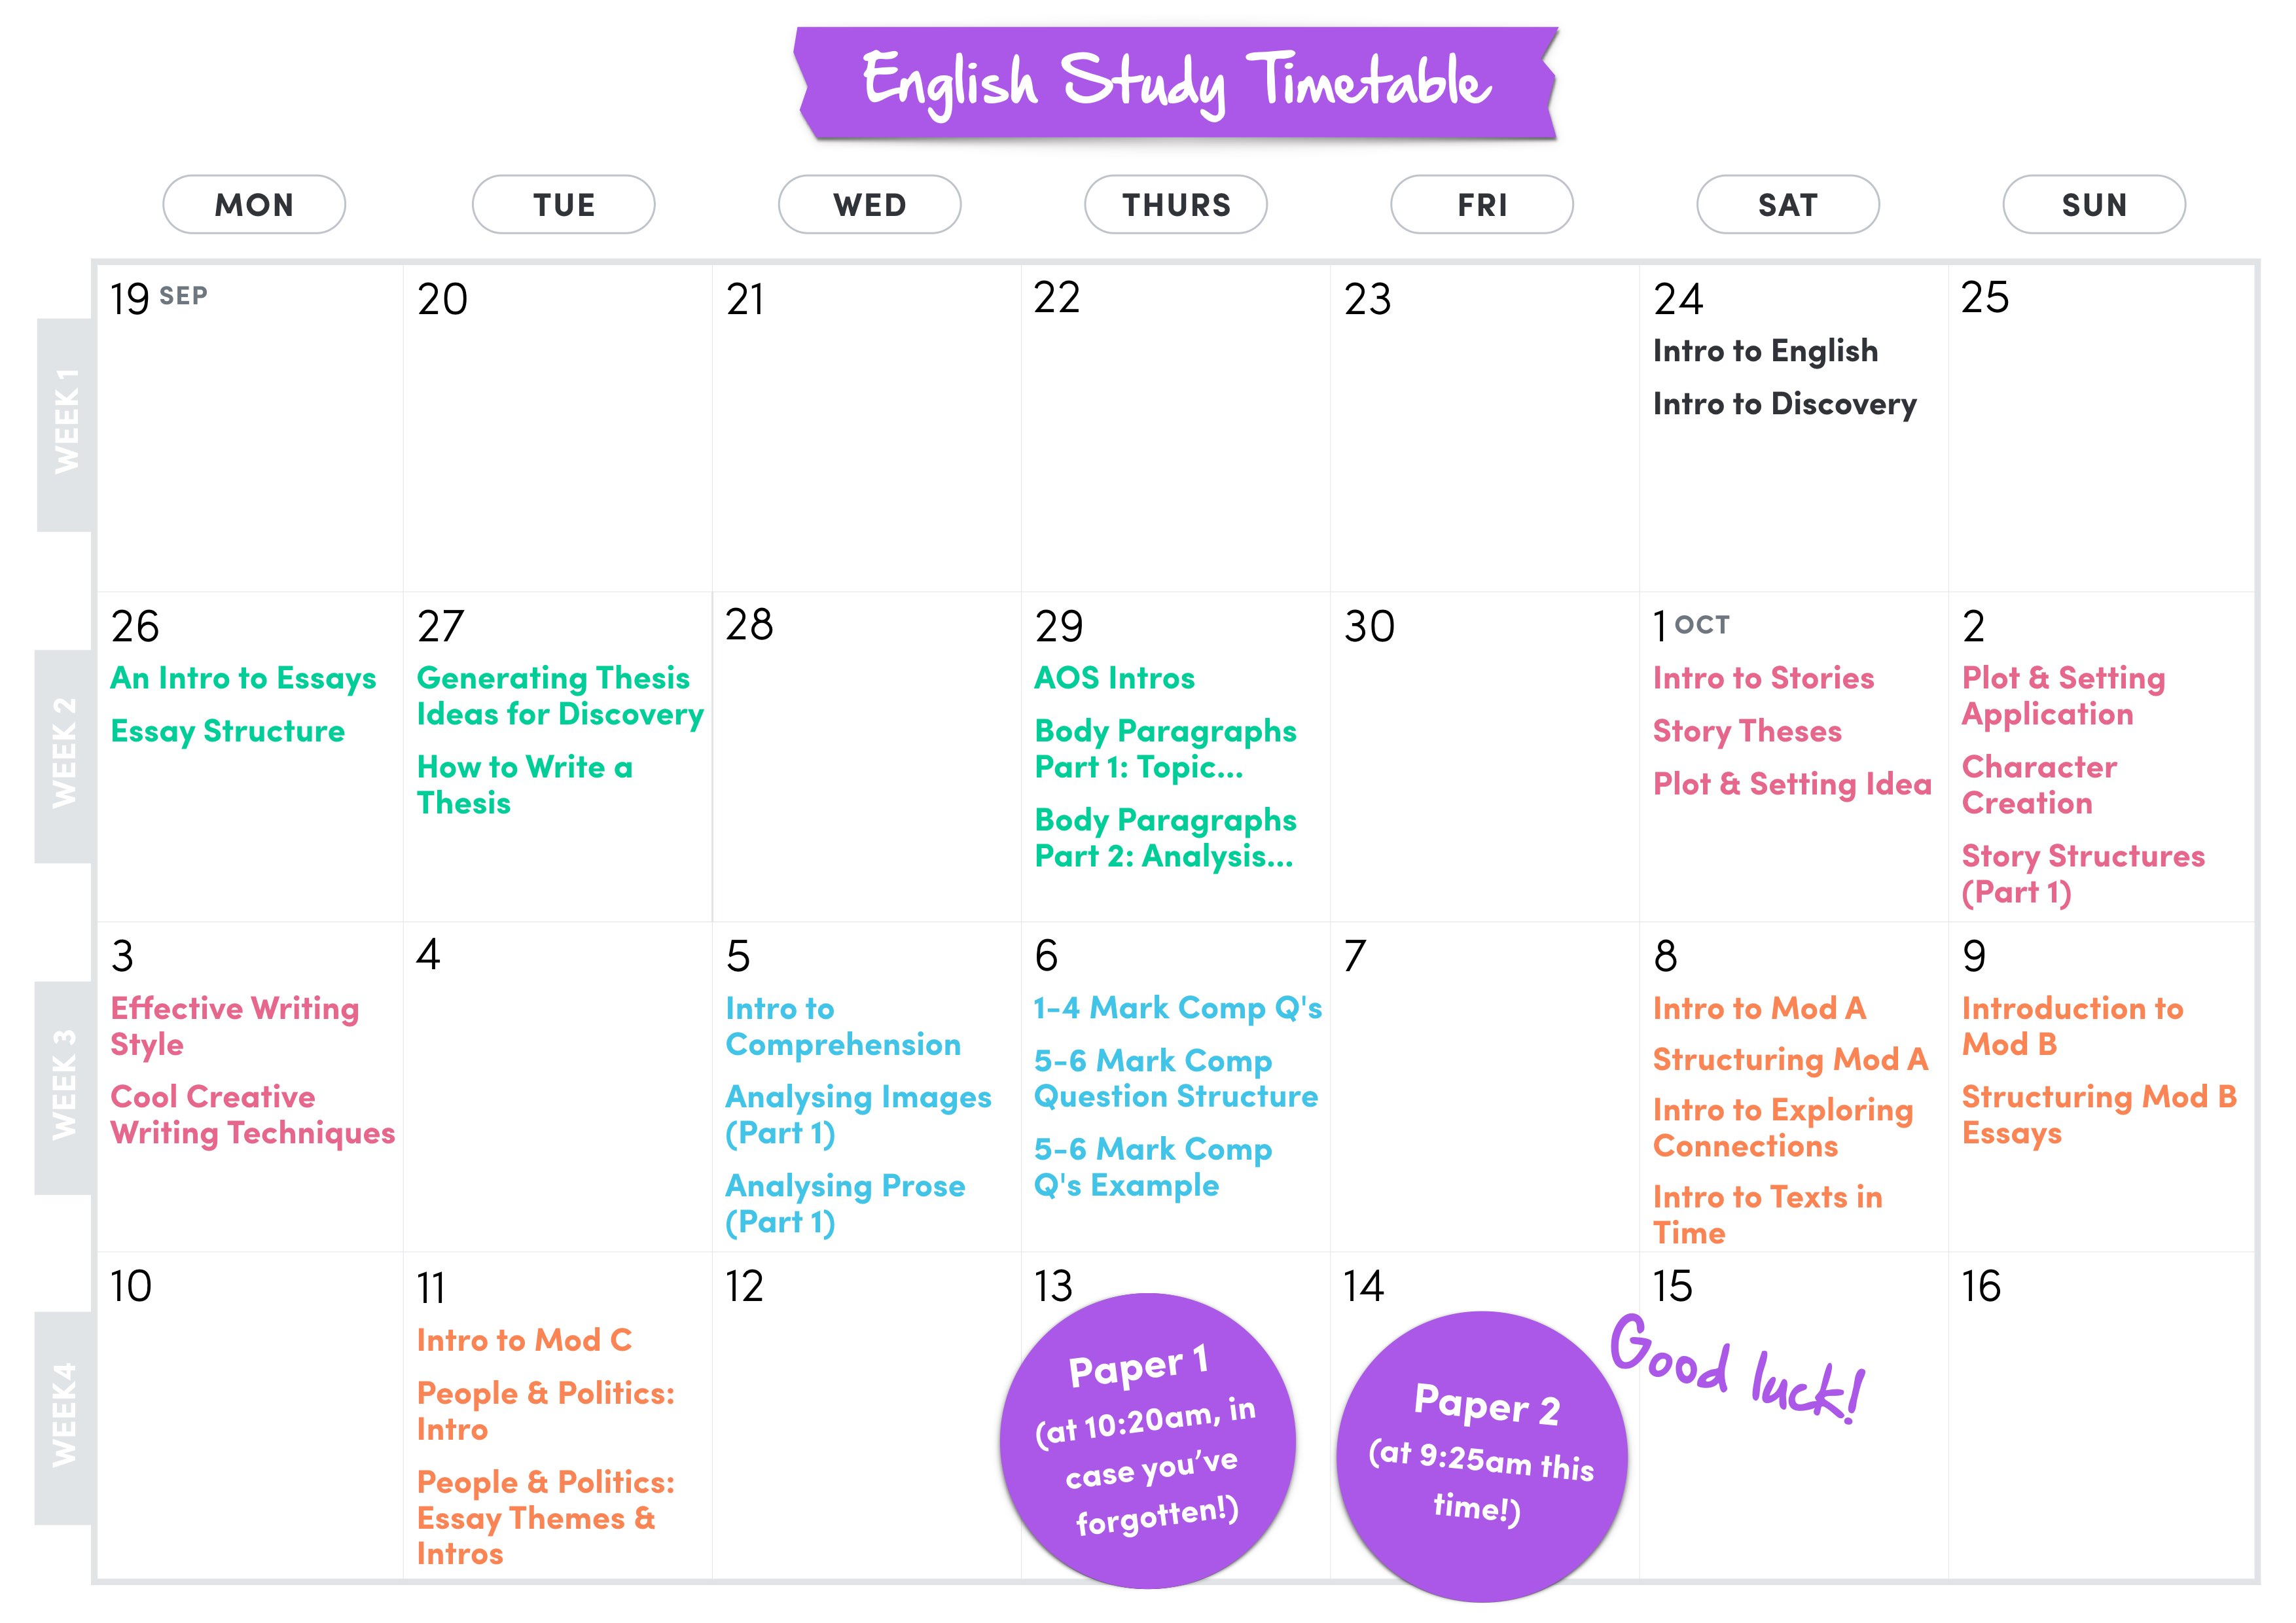 english advanced study timetable this timetable has been carefully thought out so you can balance your studying some time and fit your other subjects in there too so we really